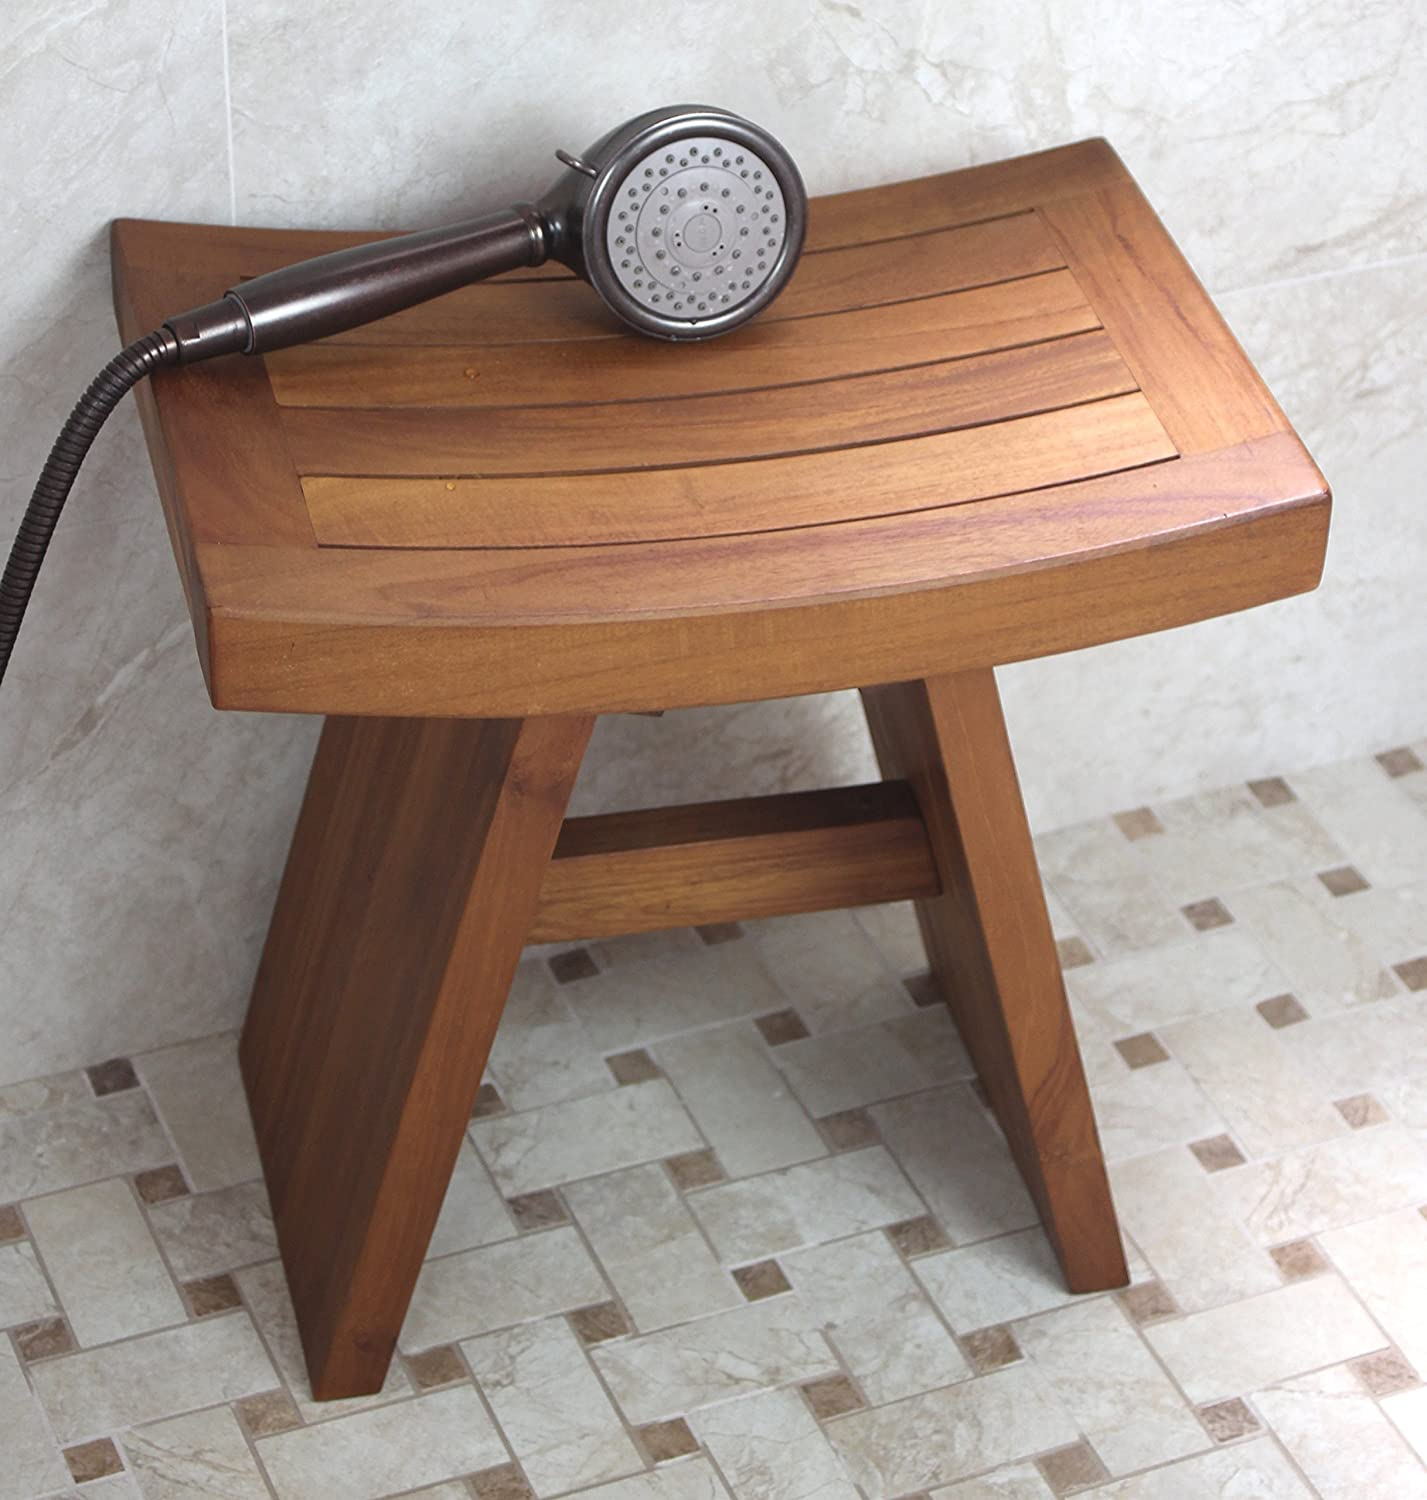 image quarter bamboo bathroom stool amazoncom the original asia quot teak shower bench health amp personal care